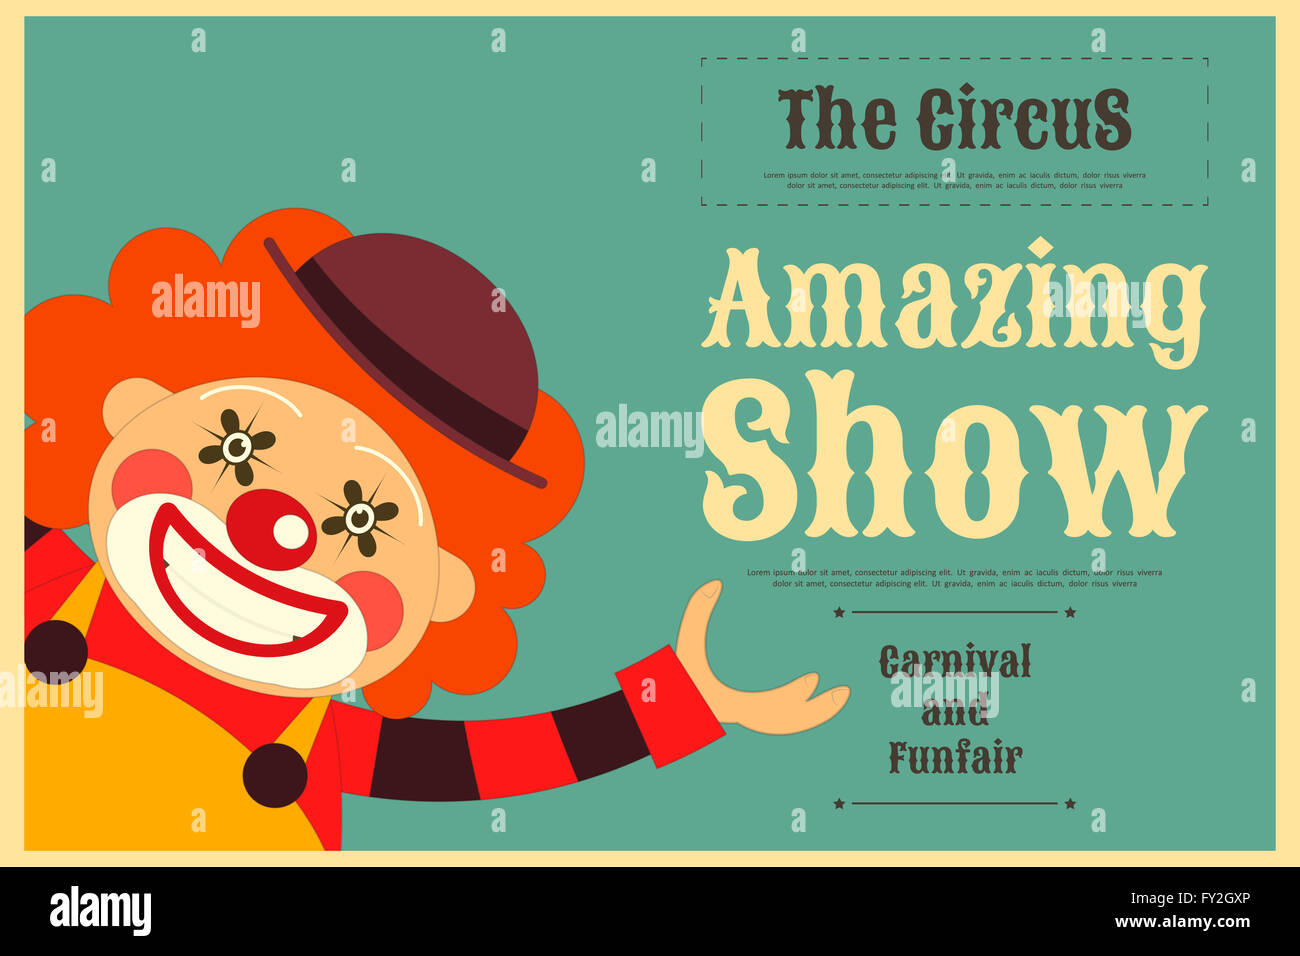 525433 also Freshly Squeezed Orange Juice Ads Vector also 104867 Vintage Style Car Advertising Poster Vector 02 furthermore Details furthermore Stock Photo Circus Poster In Vintage Style Cartoon Style Circus Clown Illustration 102704750. on cartoon animal ads